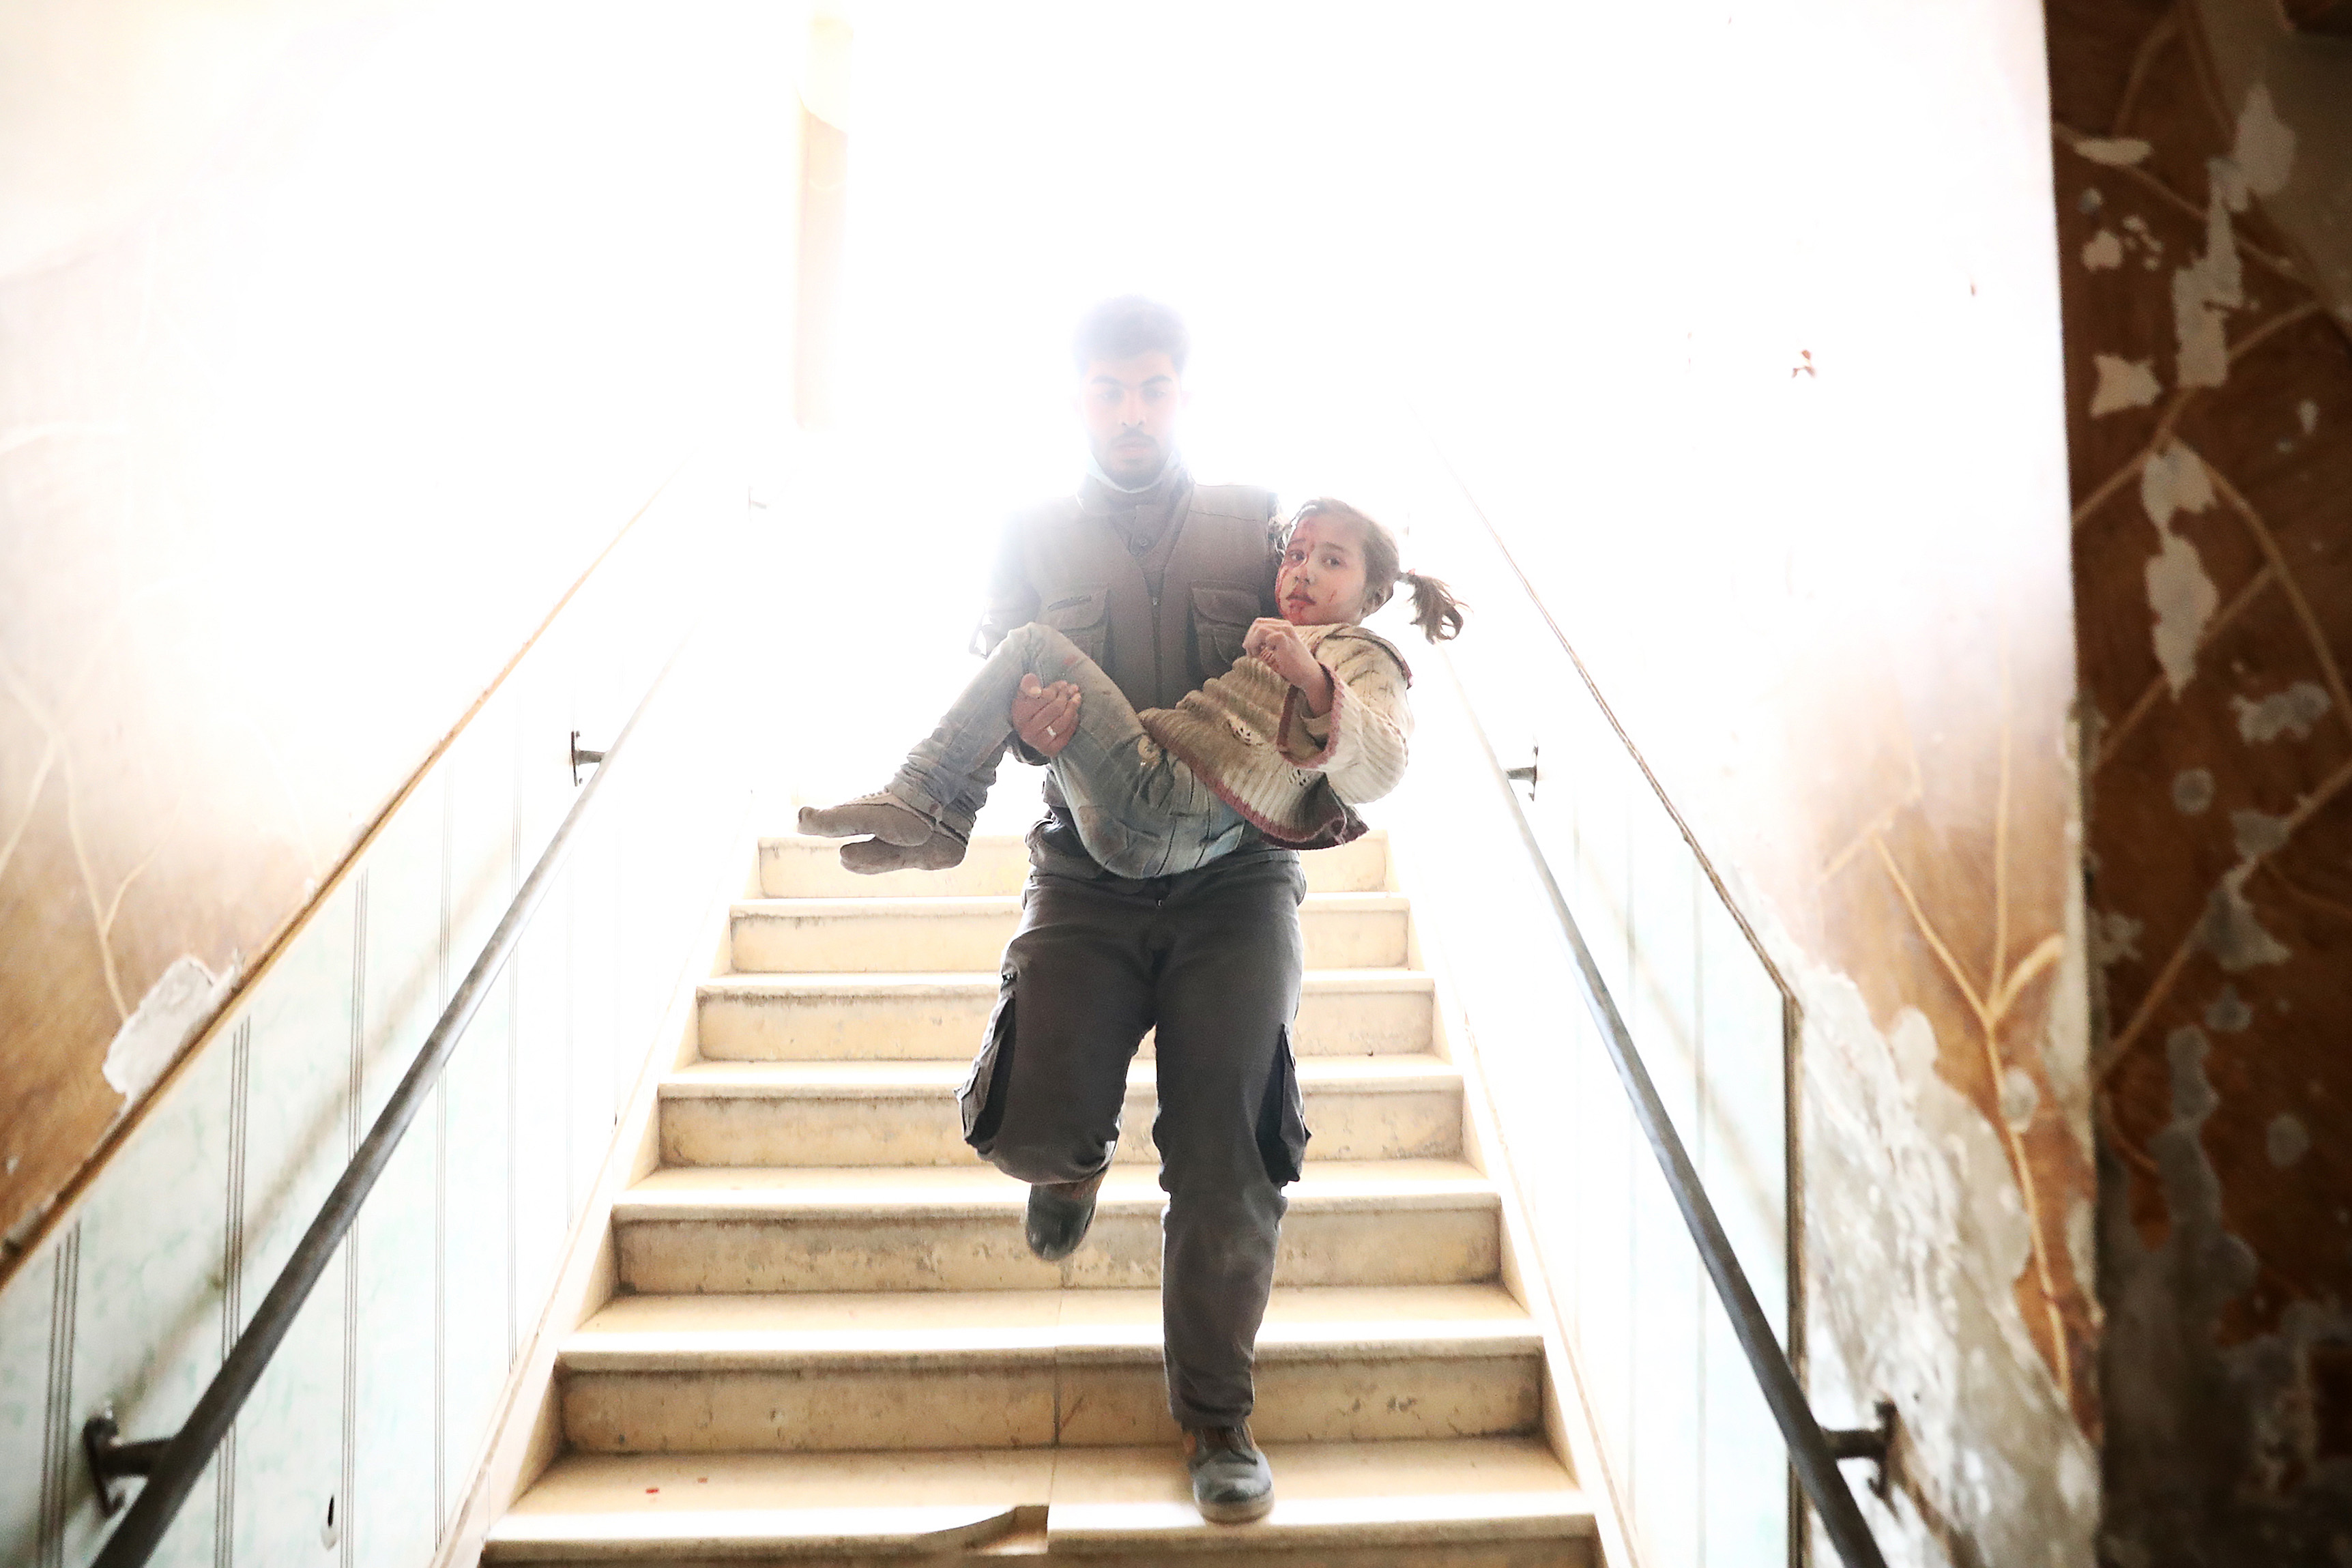 TOPSHOT - A Syrian civil defence volunteer carries a wounded girl as he rushes to a make-shift hospital following reported government airstrike on the rebel-held town of Douma, on the eastern outskirts of the capital Damascus, on February 25, 2017.Syrian regime forces carried out raids on several areas in the country, targeting mainly the besieged town of Douma, causing the deaths of at least 13 civilians, according to Syrian Observatory for Human Rights. The raids continued despite the United Nations confirmation a few days earlier that Moscow formally asked its ally Damascus to stop launching strikes during the Geneva negotiations, which began earlier in the week. / AFP / Abd Doumany (Photo credit should read ABD DOUMANY/AFP/Getty Images)